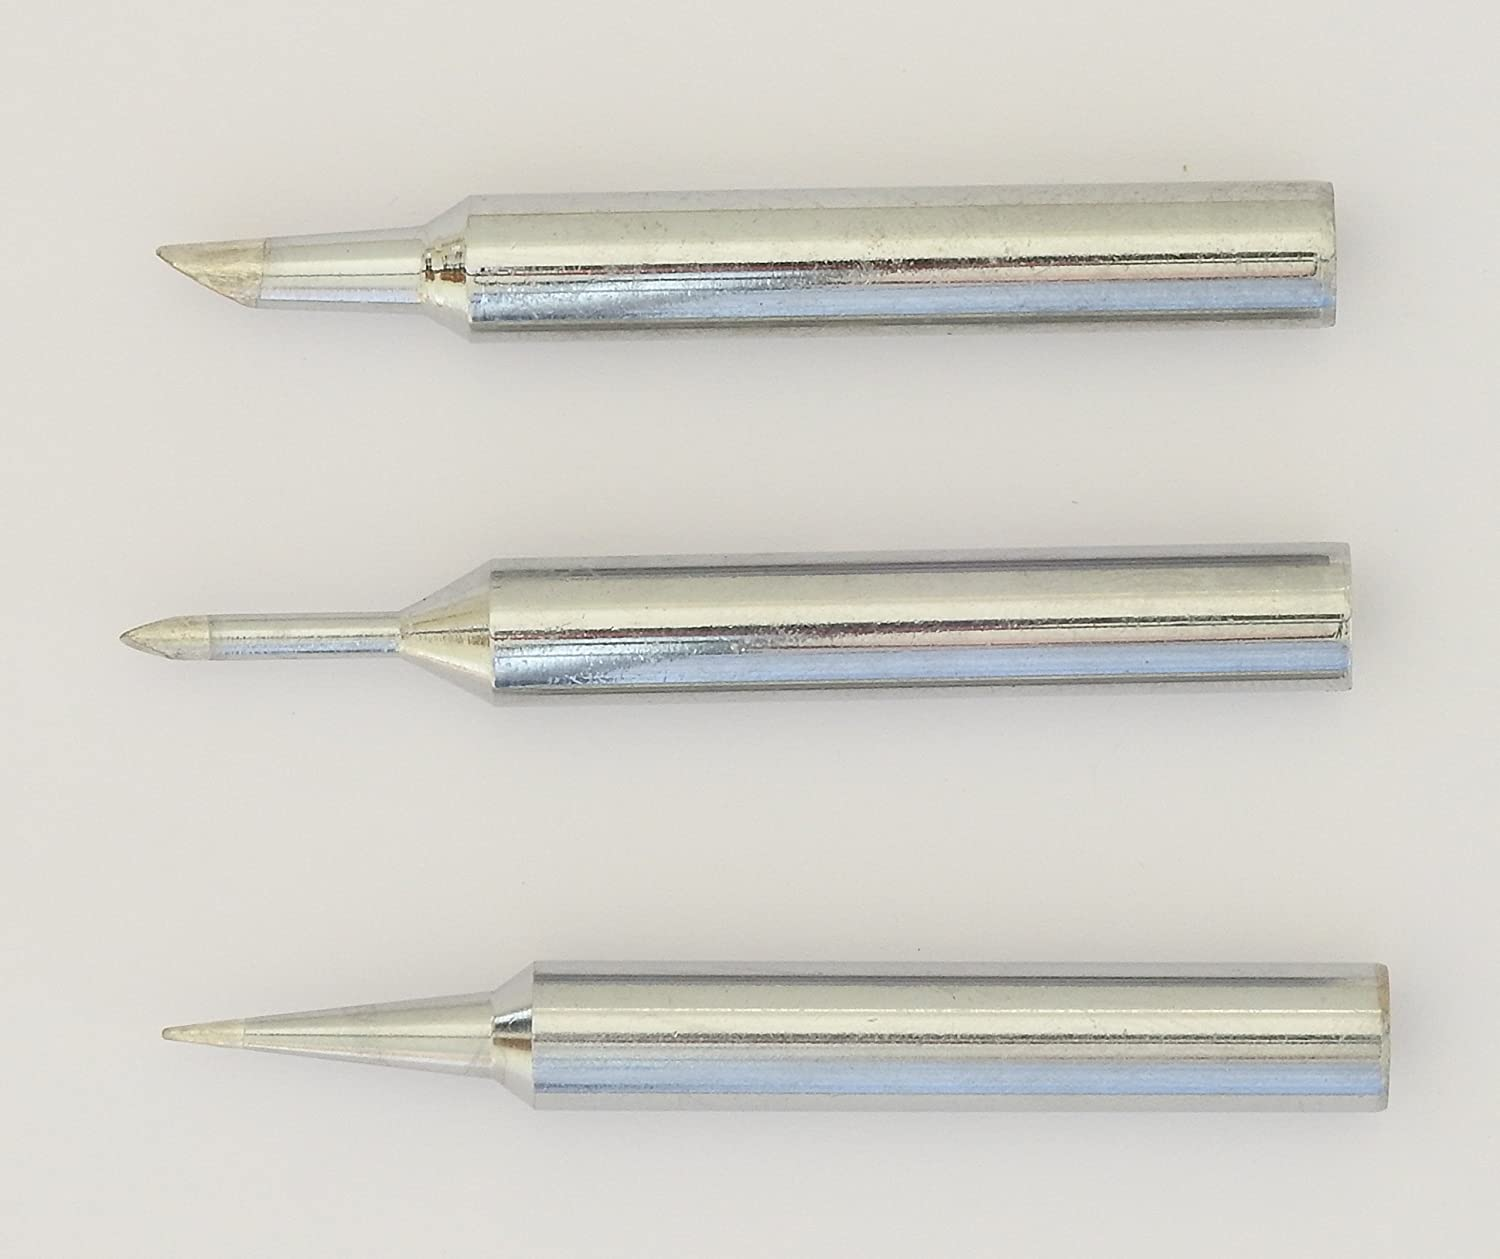 Pack of 3 assorted replacement tips for the Antex XS25 soldering iron (MMF00J0)